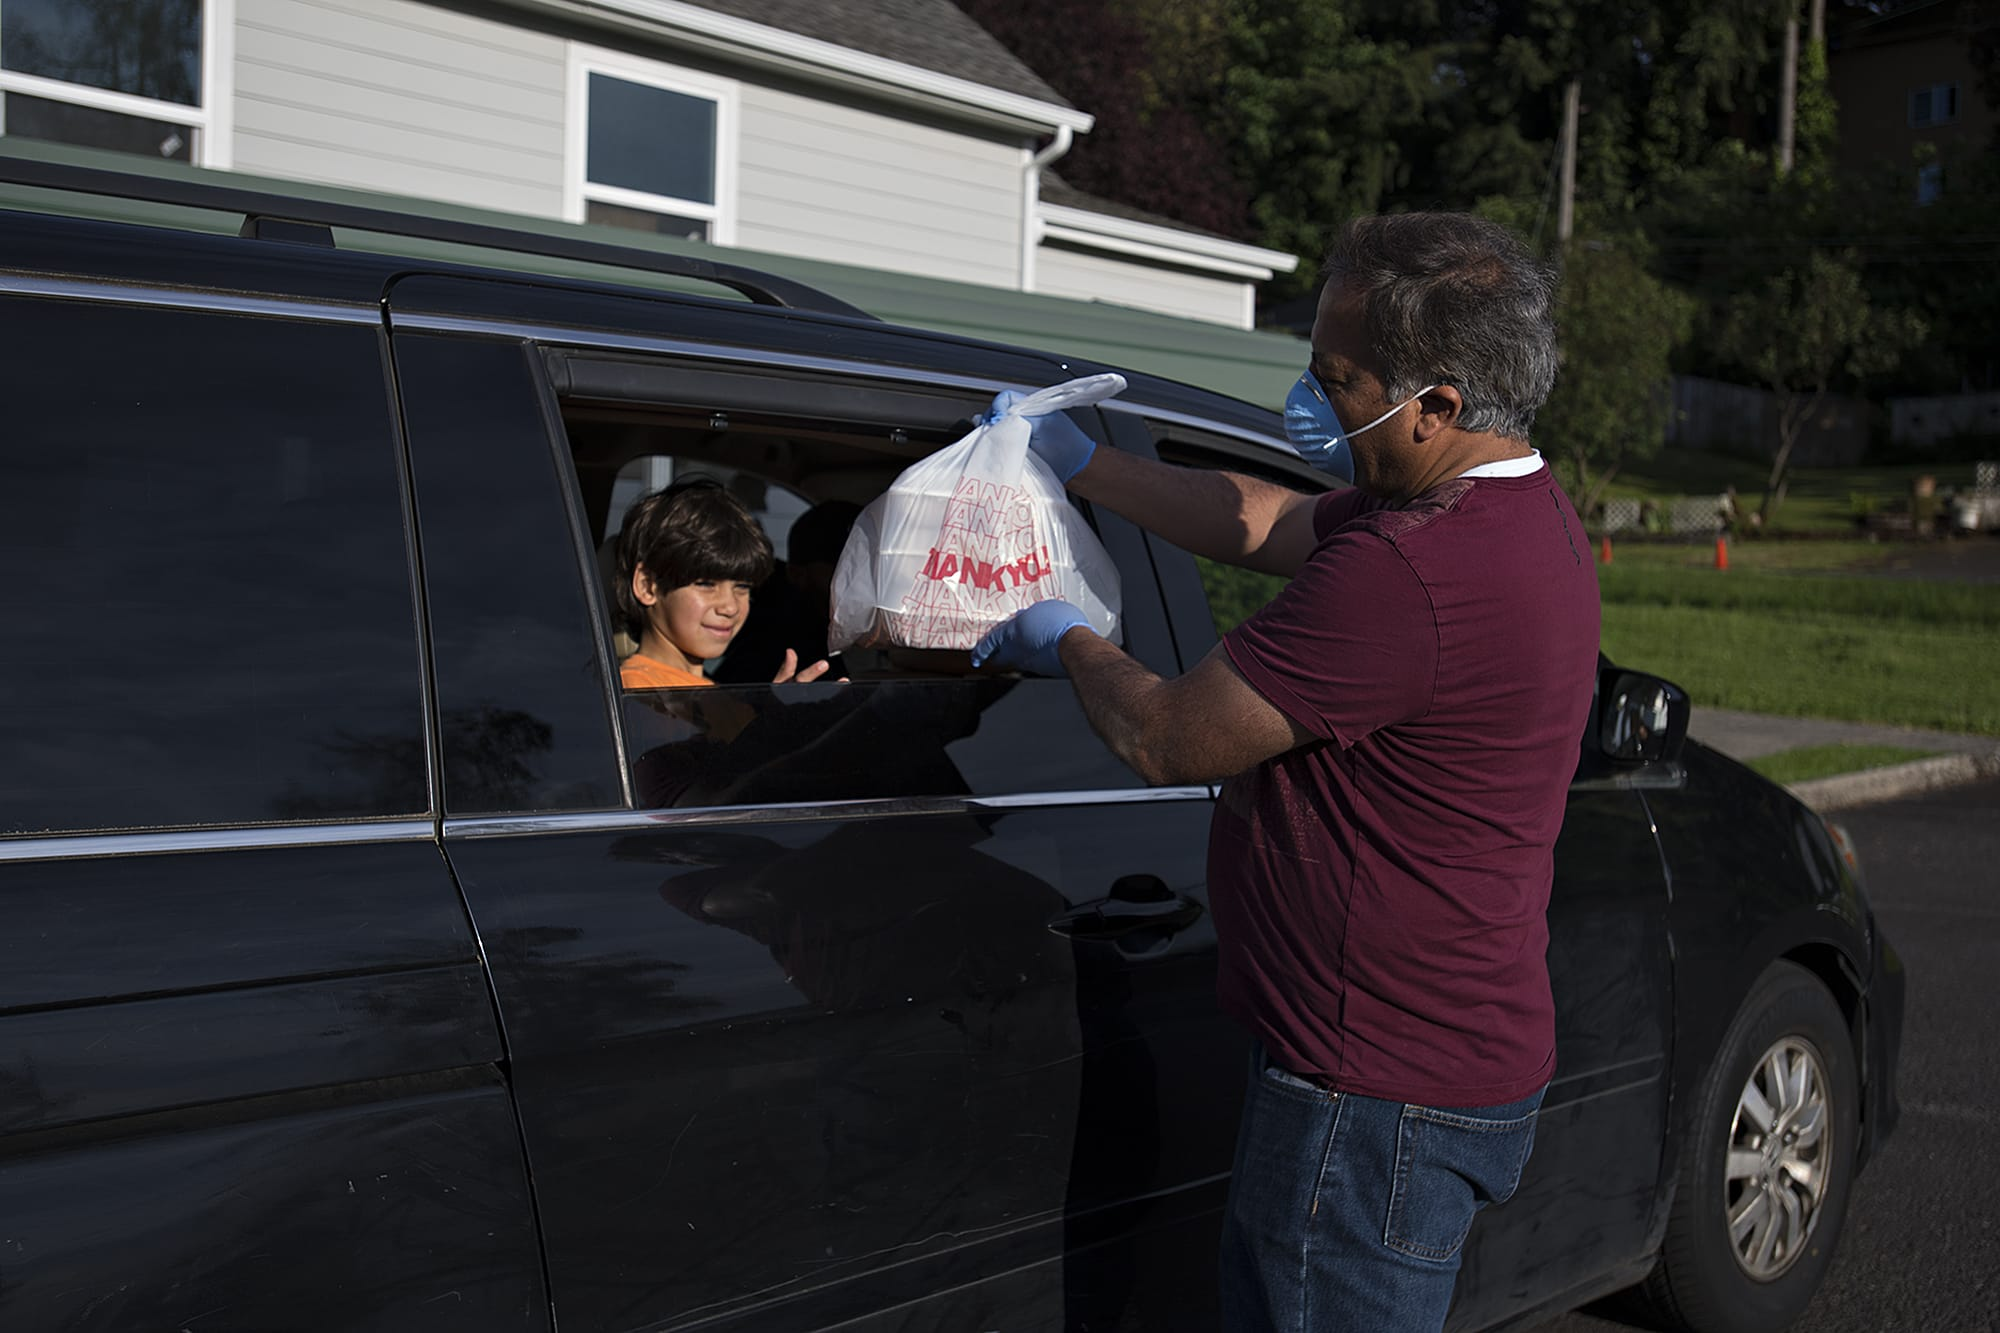 Abdullah Hariri, 7, left, helps collect meals for his family from treasurer Ahmad Qayoumi at the Islamic Society of Southwest Washington on Sunday evening, May 17, 2020. The local mosque is doing meals-to-go for Ramadan this year because of concerns about COVID-19.